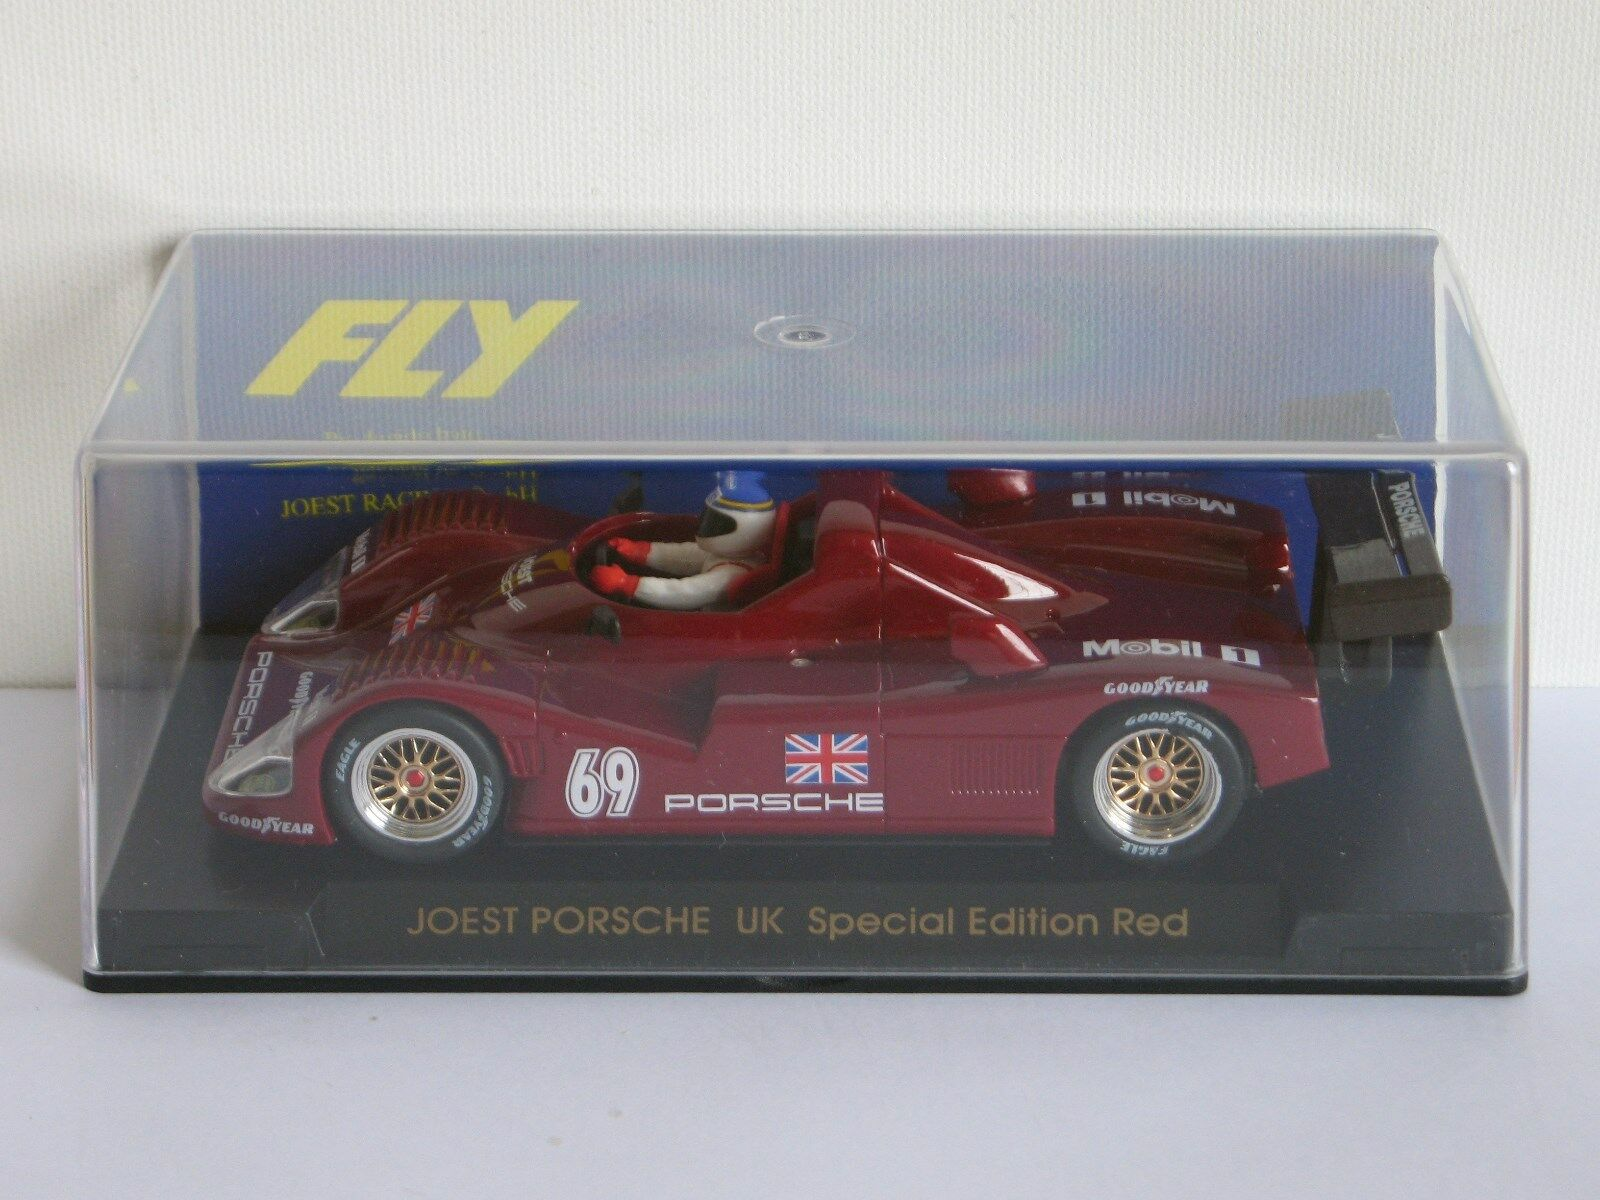 FLY Car Joest Porsche UK Special Edition Red Ref. E41